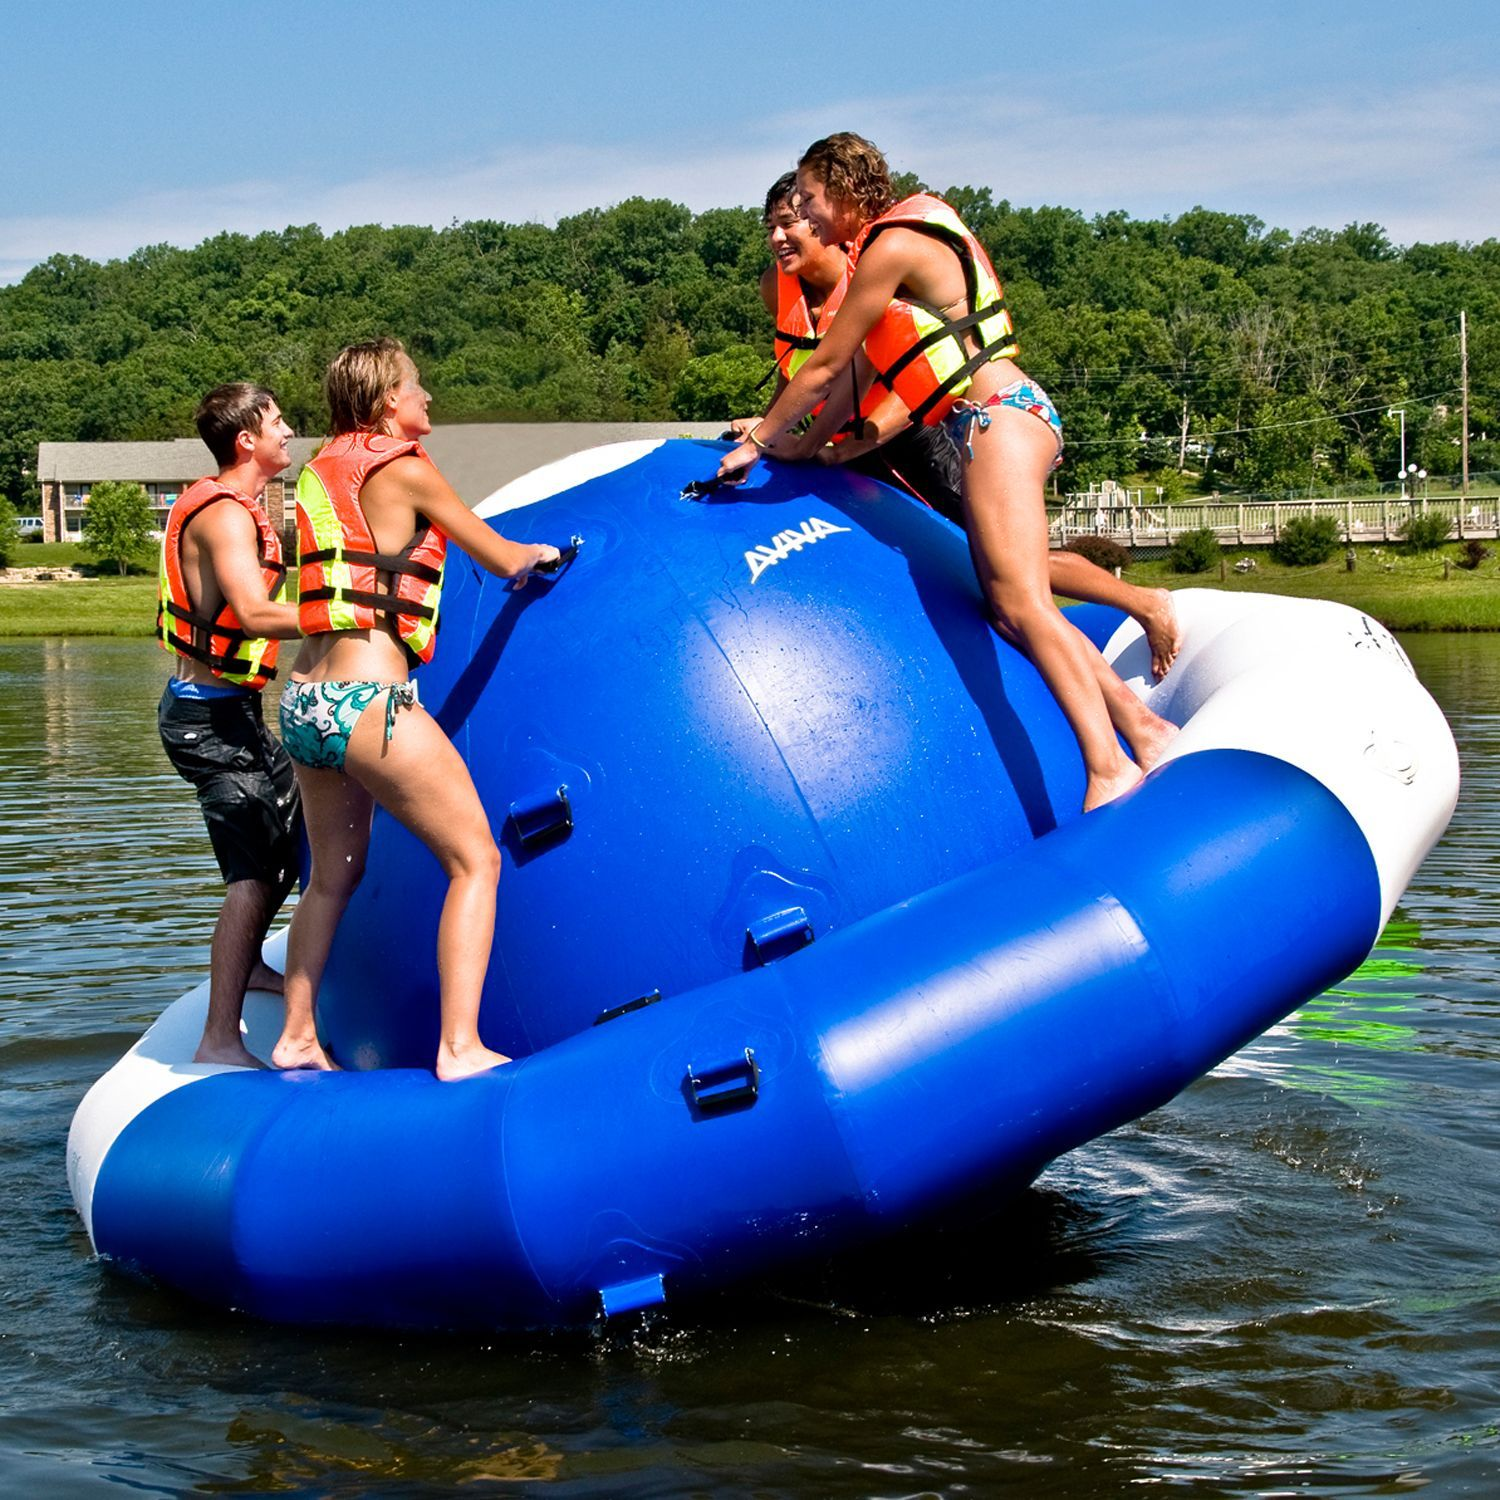 Rave Sports 12 foot Inflatable Saturn Inflatable Water Toy by